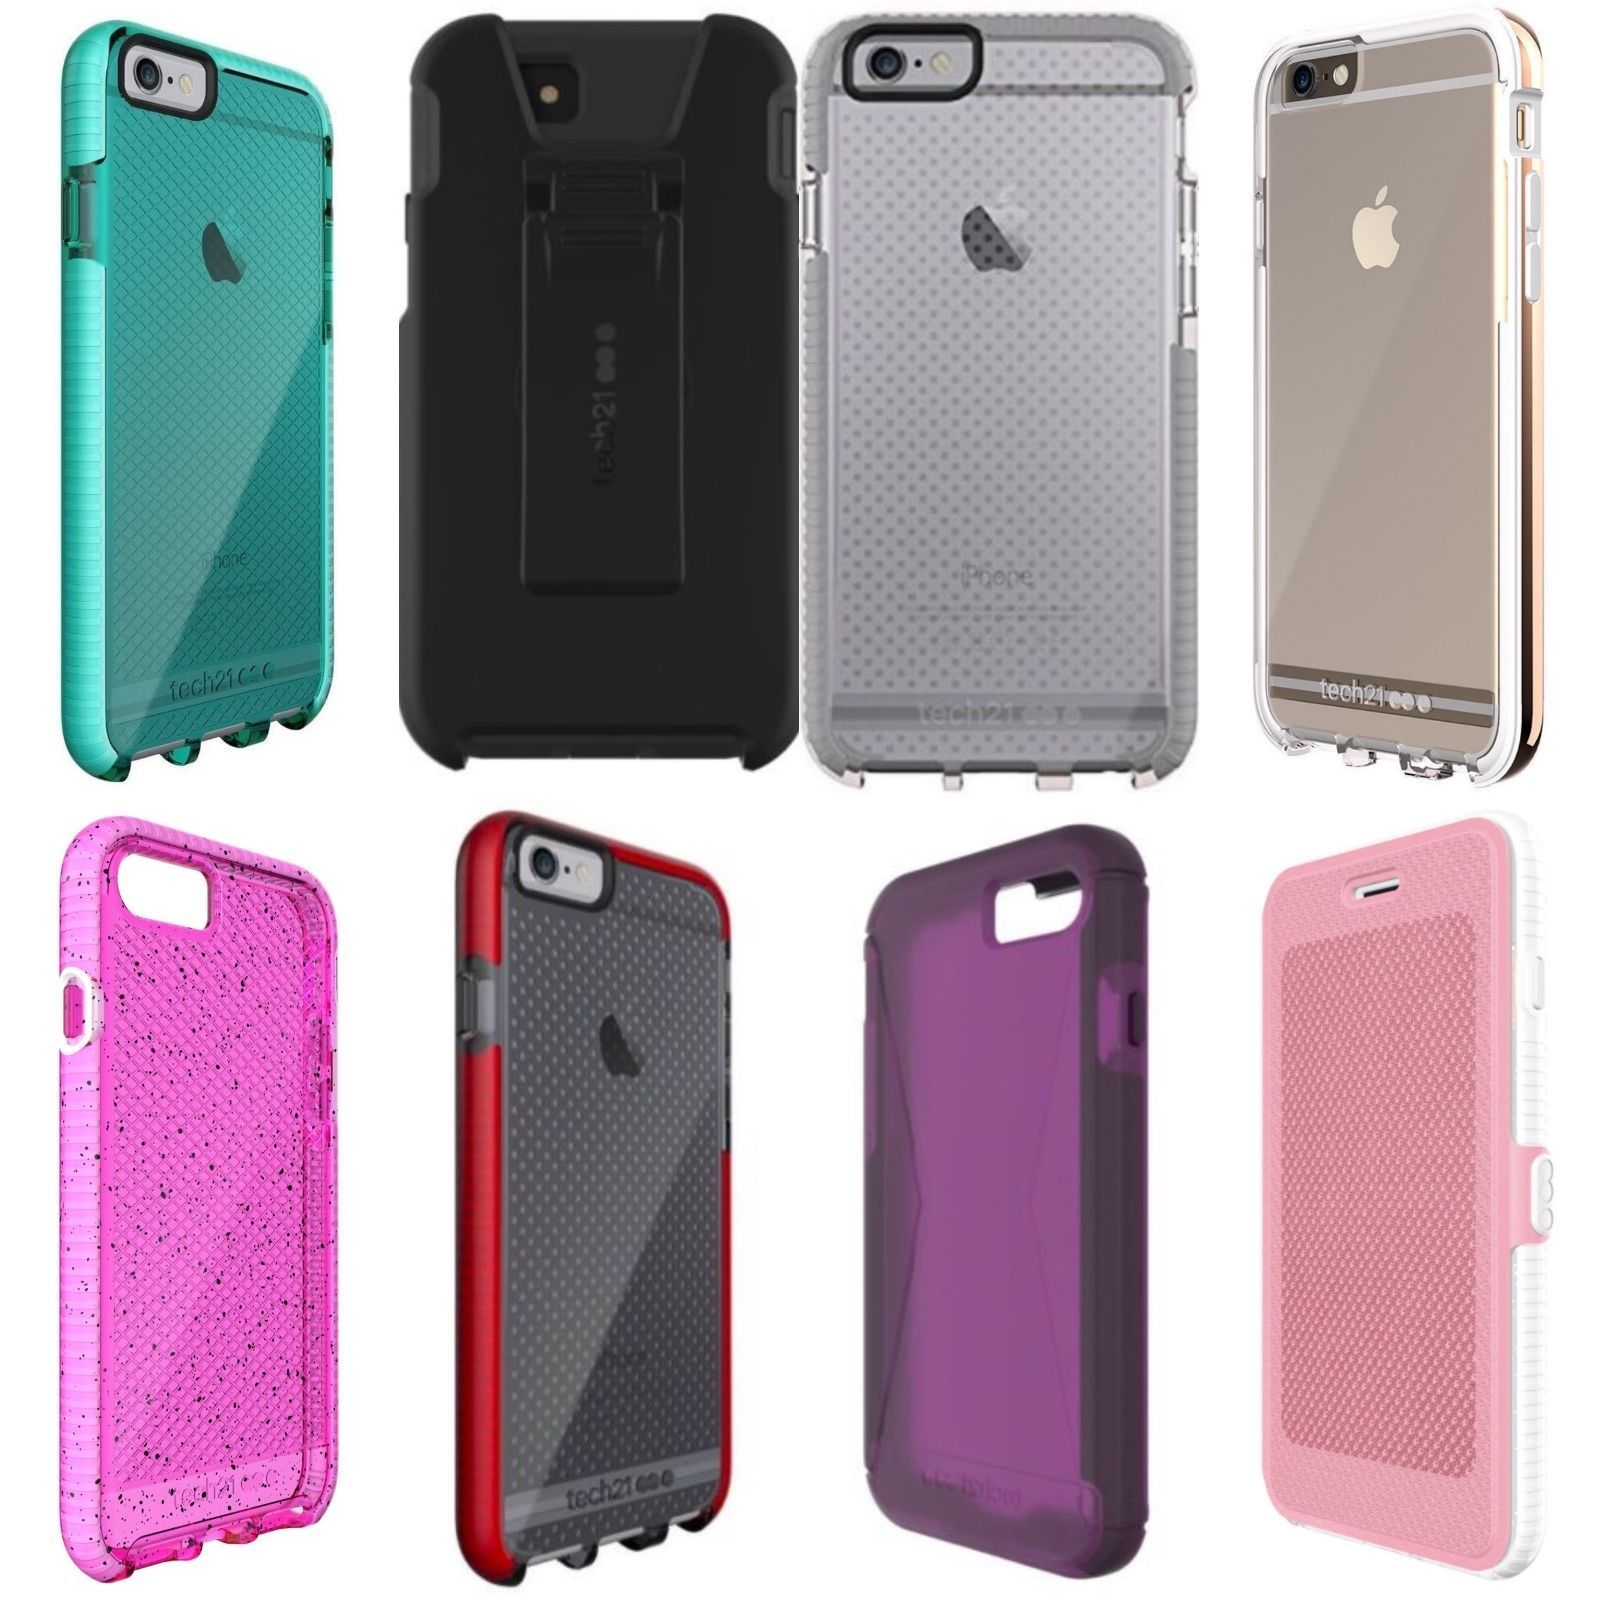 These are Brand New Authentic Cases for iPhone 5 5s SE 6 6s 6 Plus 6s Plus 7 7 PlusAny case for iPhone 6 6s will fit ONLY plus iphone case check